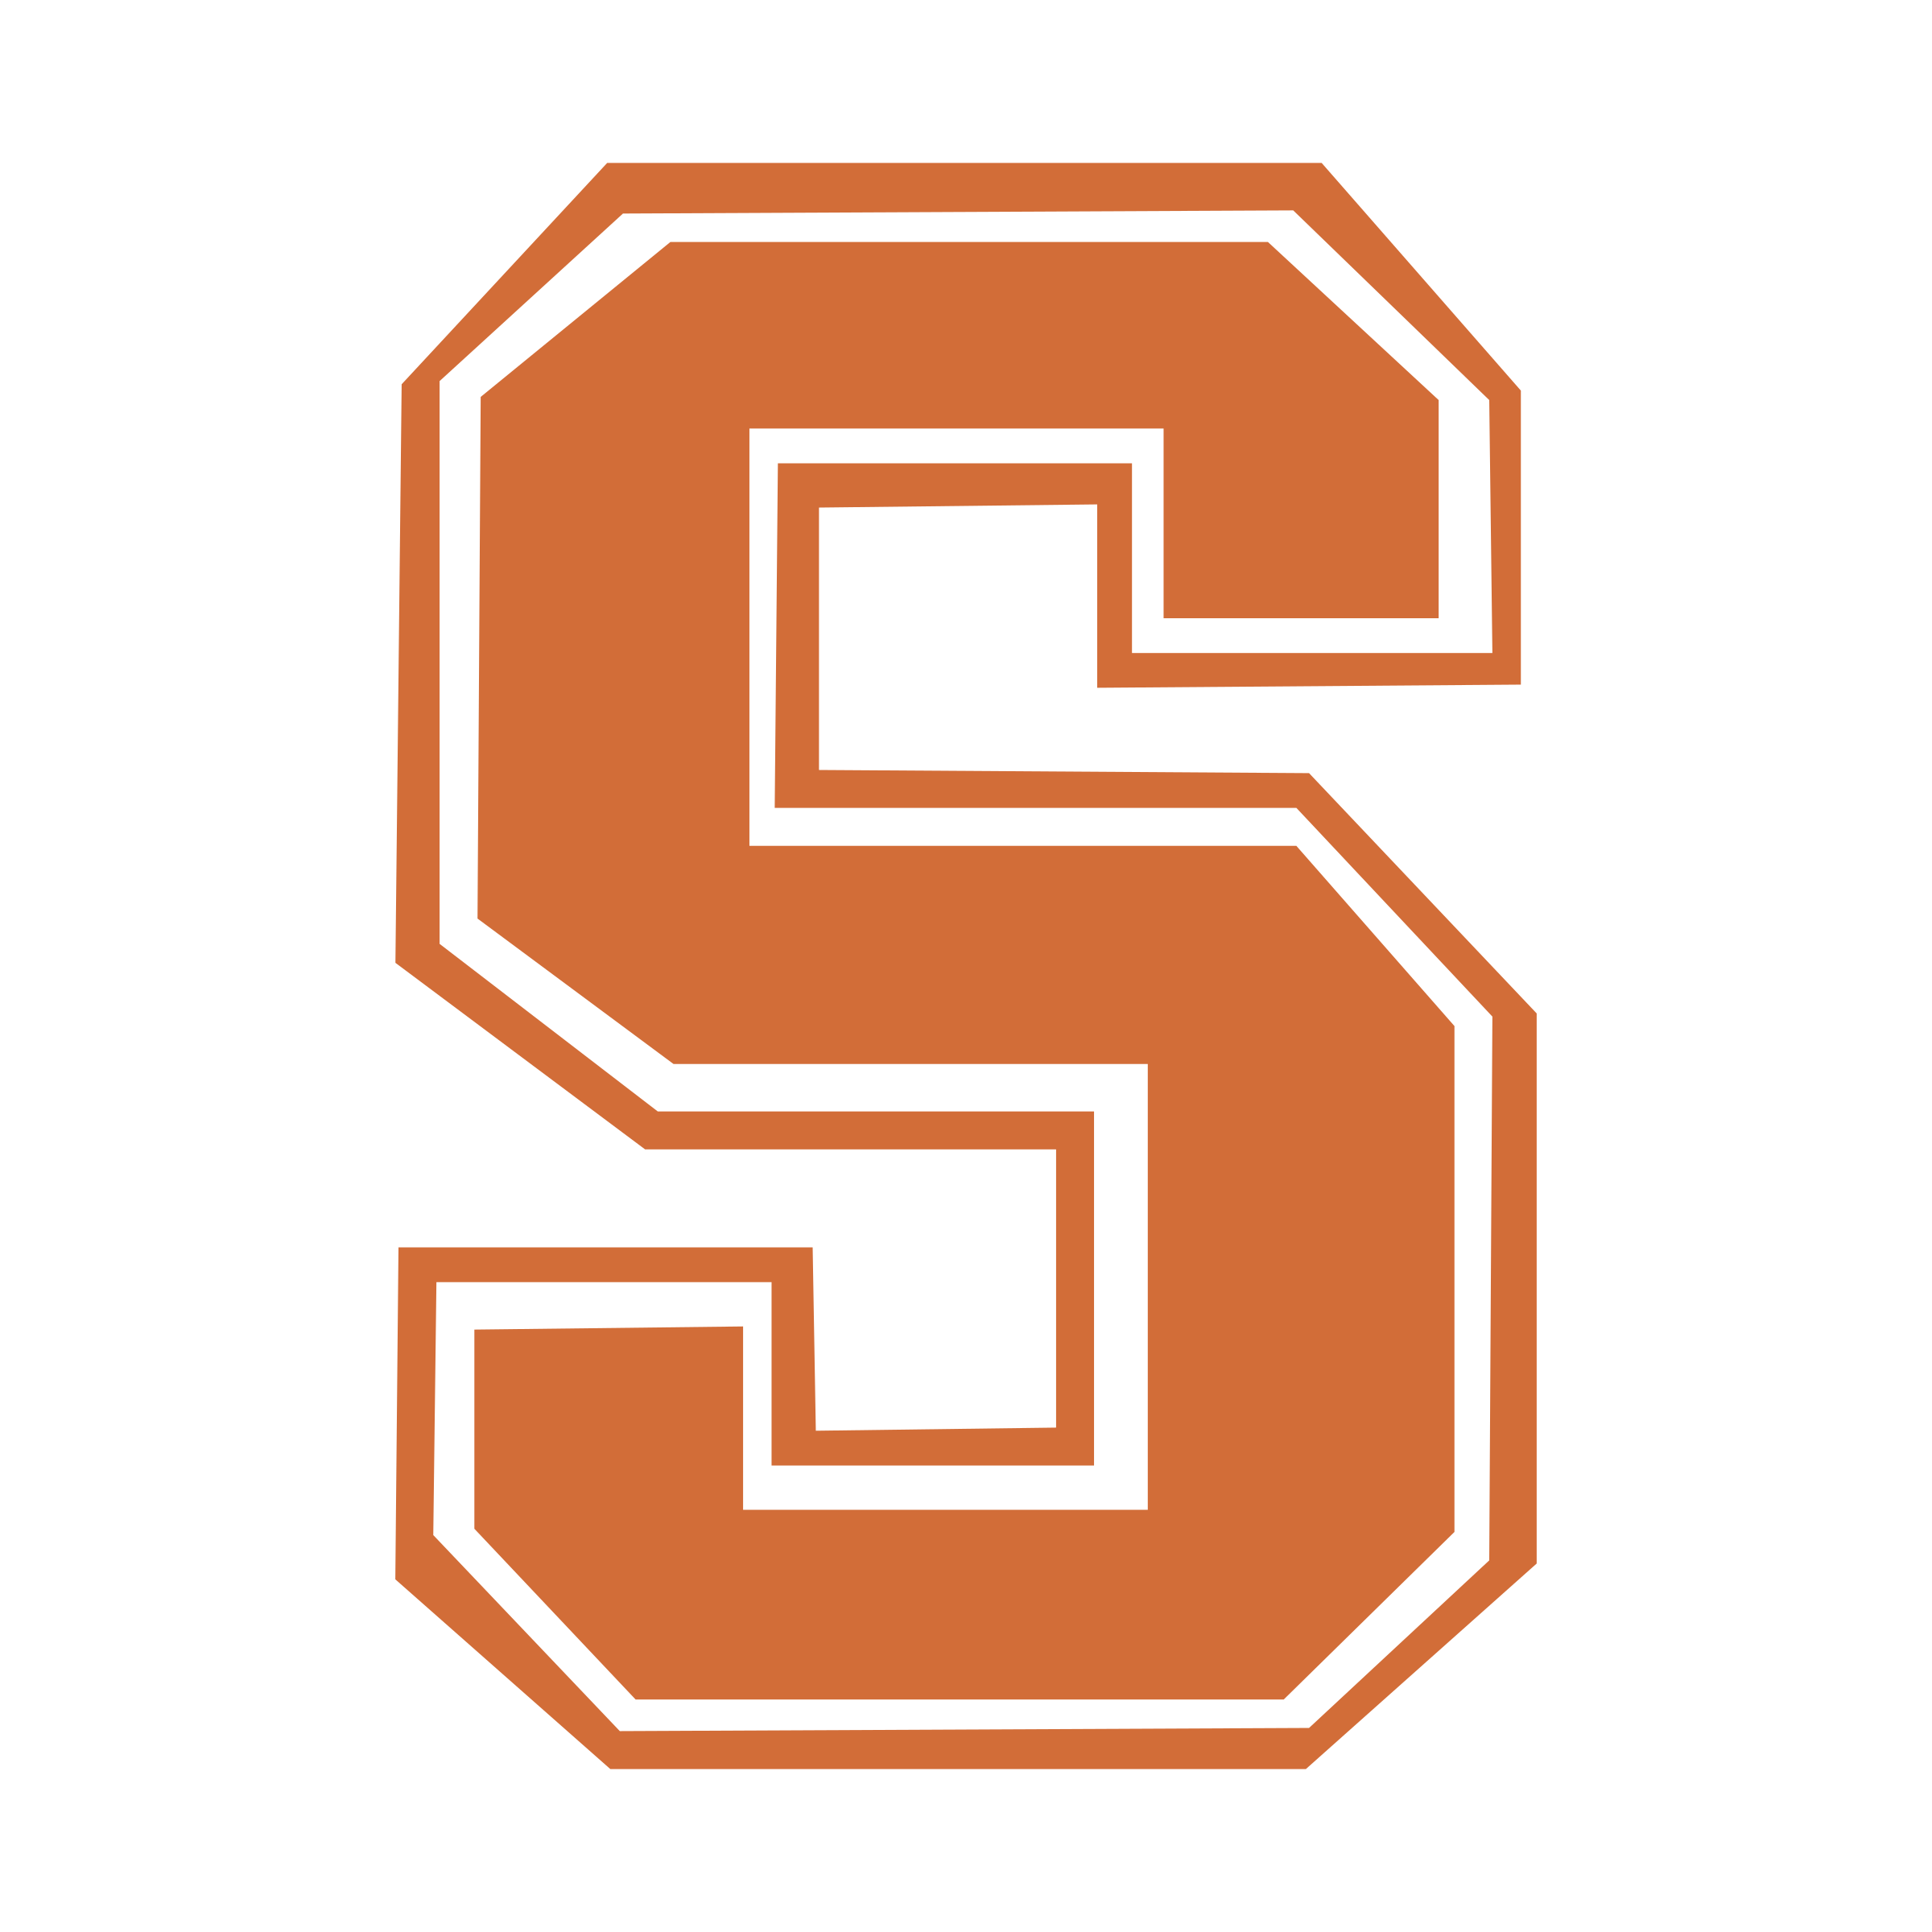 Syracuse Orangemen Logo PNG Transparent & SVG Vector.